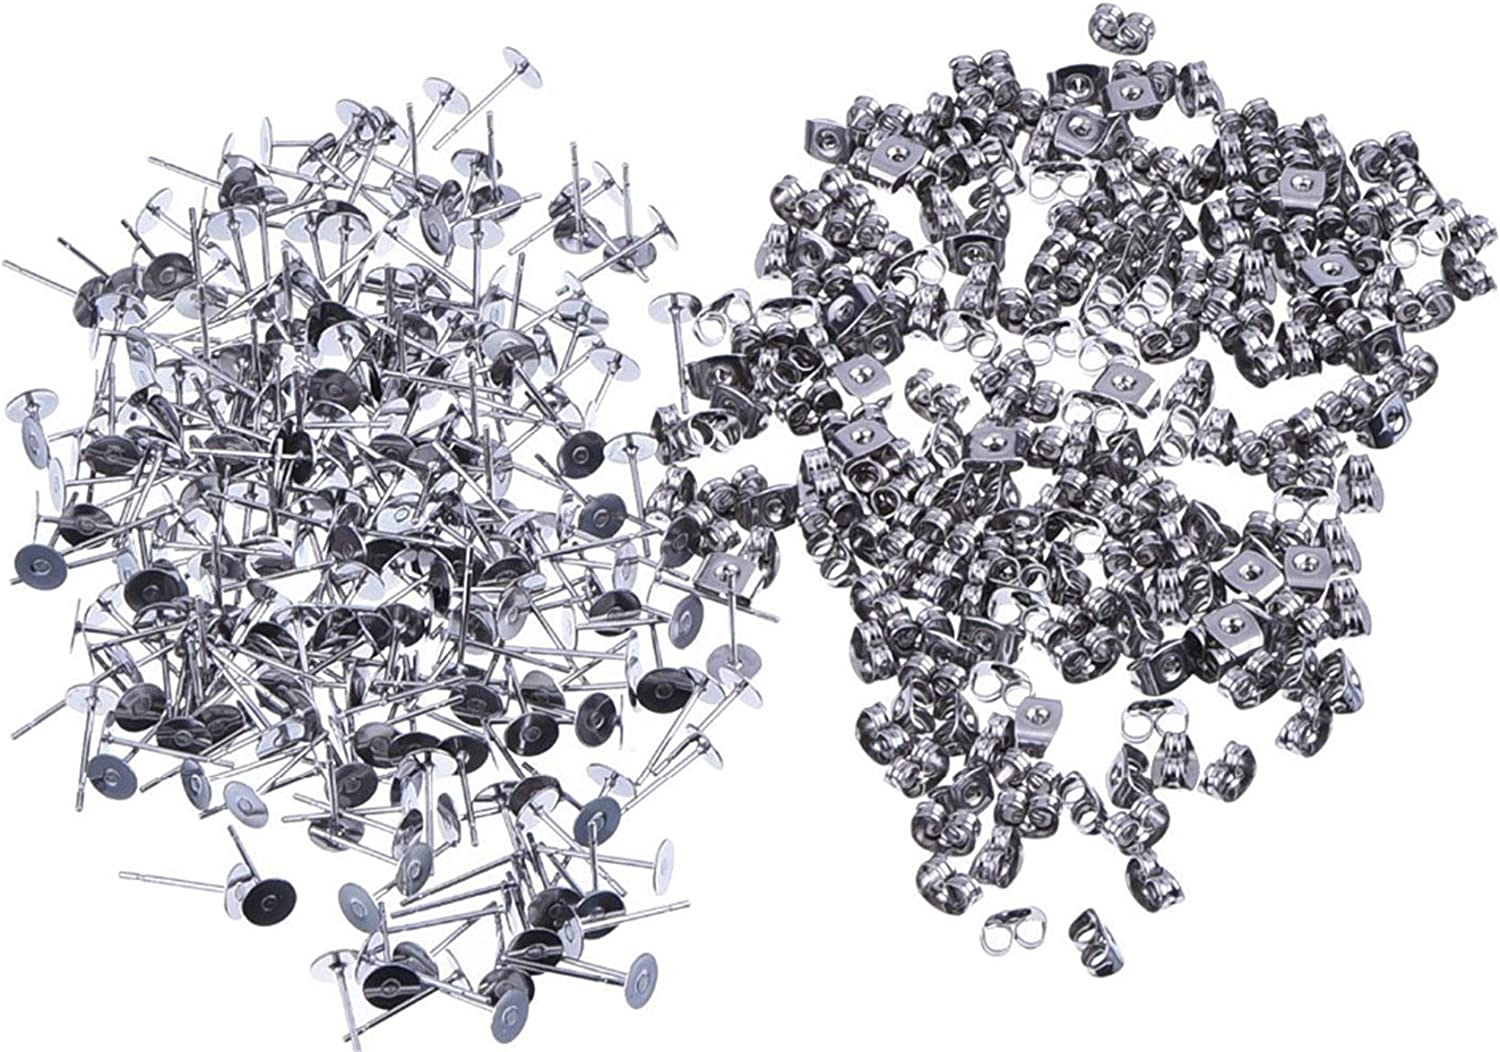 4mm 100 Pieces Stainless Steel Earrings Posts Flat Pad,100 Pieces Butterfly Earring Backs,100 Pieces Bullet Earring Backs,Total 300 Pieces